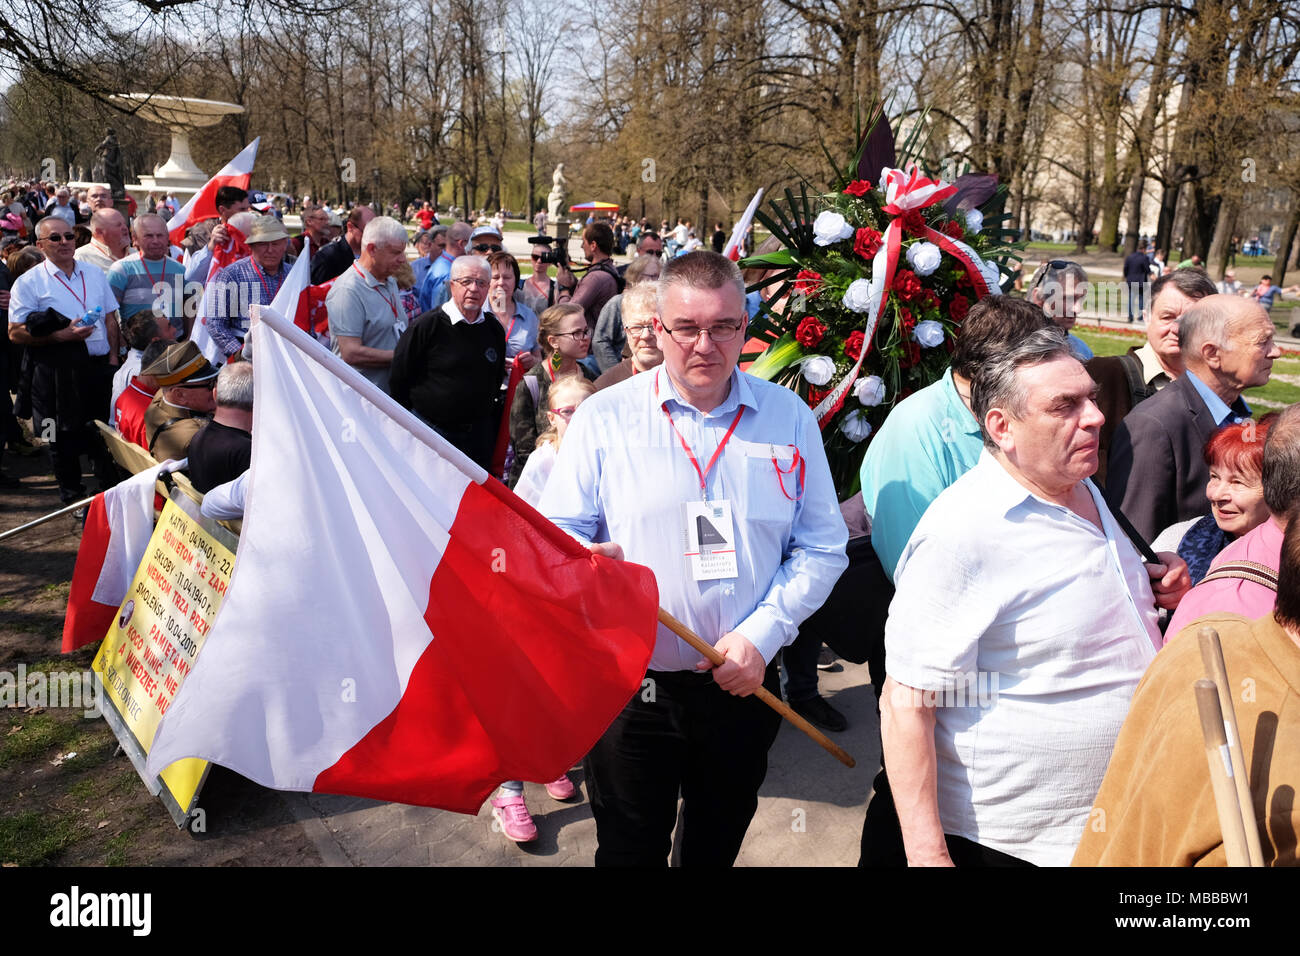 Warsaw, Poland - Tuesday 10th April 2018 - Poles queue as they arrive at Plac Pilsudskiego to take part in the commemoration service to remember the victims of the Smolensk ( Russia ) air crash in 2010 when a Polish Air Force VIP jet crashed killing 96 individuals including the then President of Poland Lech Kaczyński and his wife Maria. Photo Steven May / Alamy Live News - Stock Image